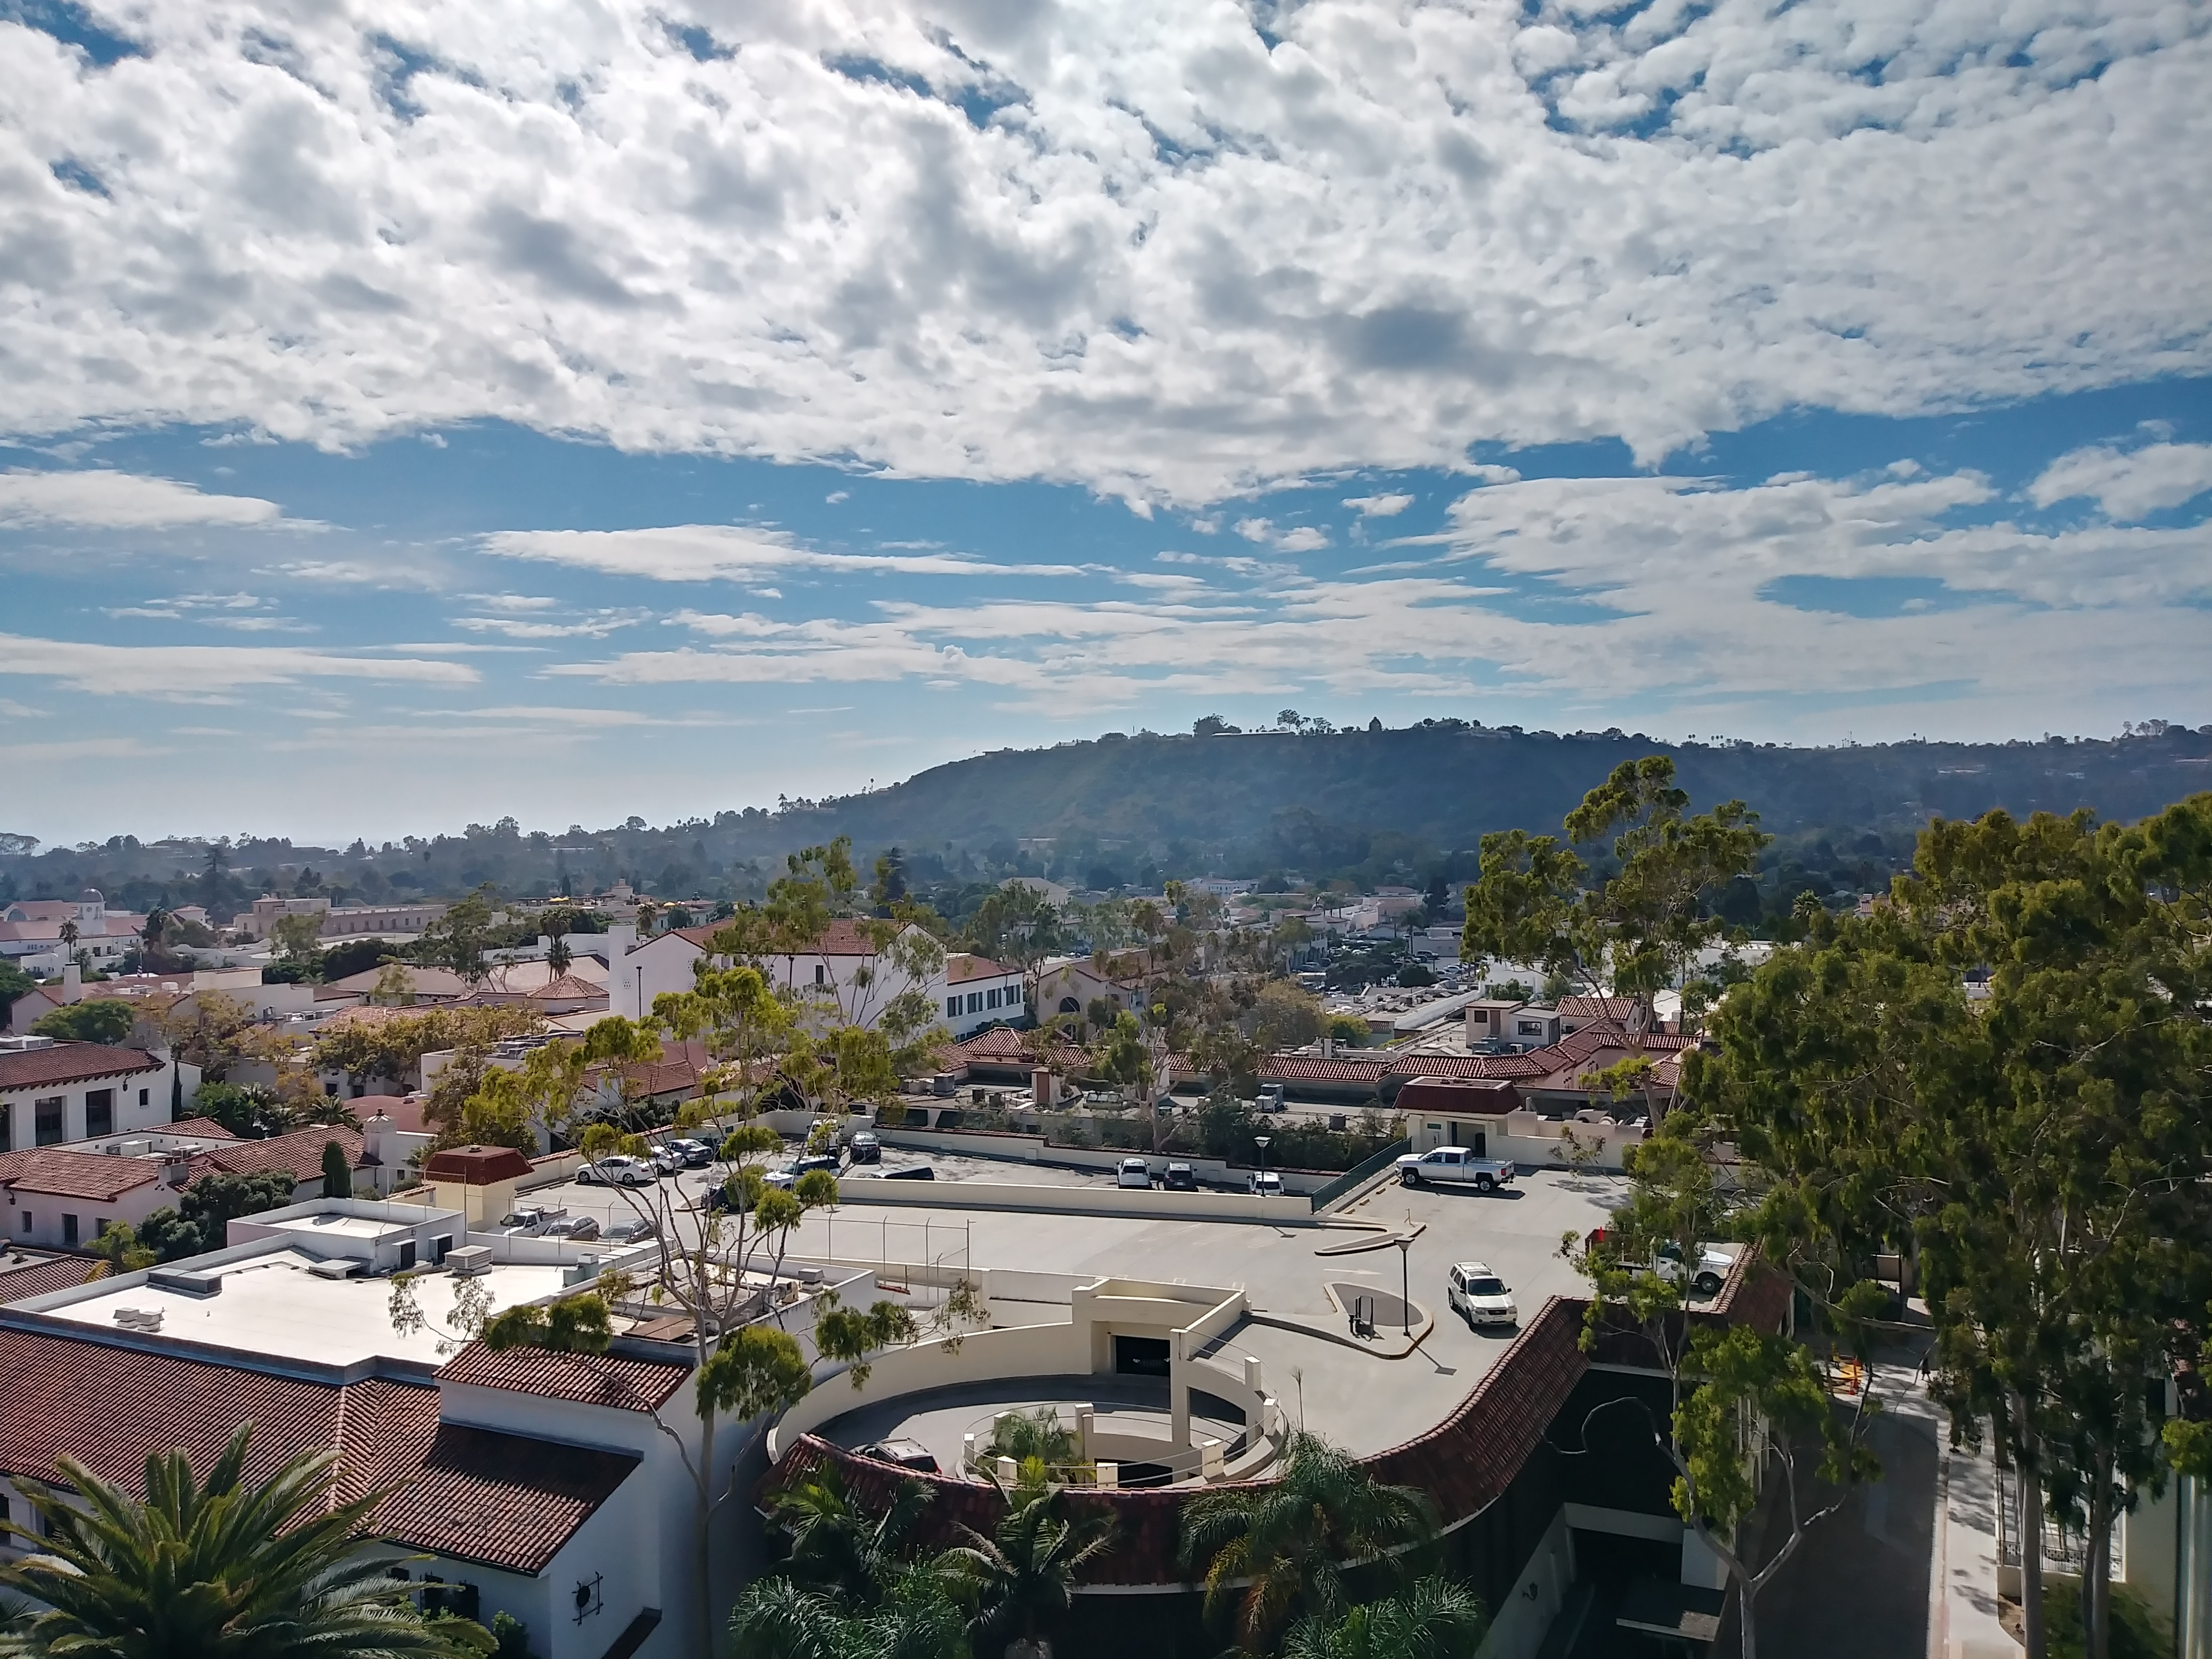 View full-size image